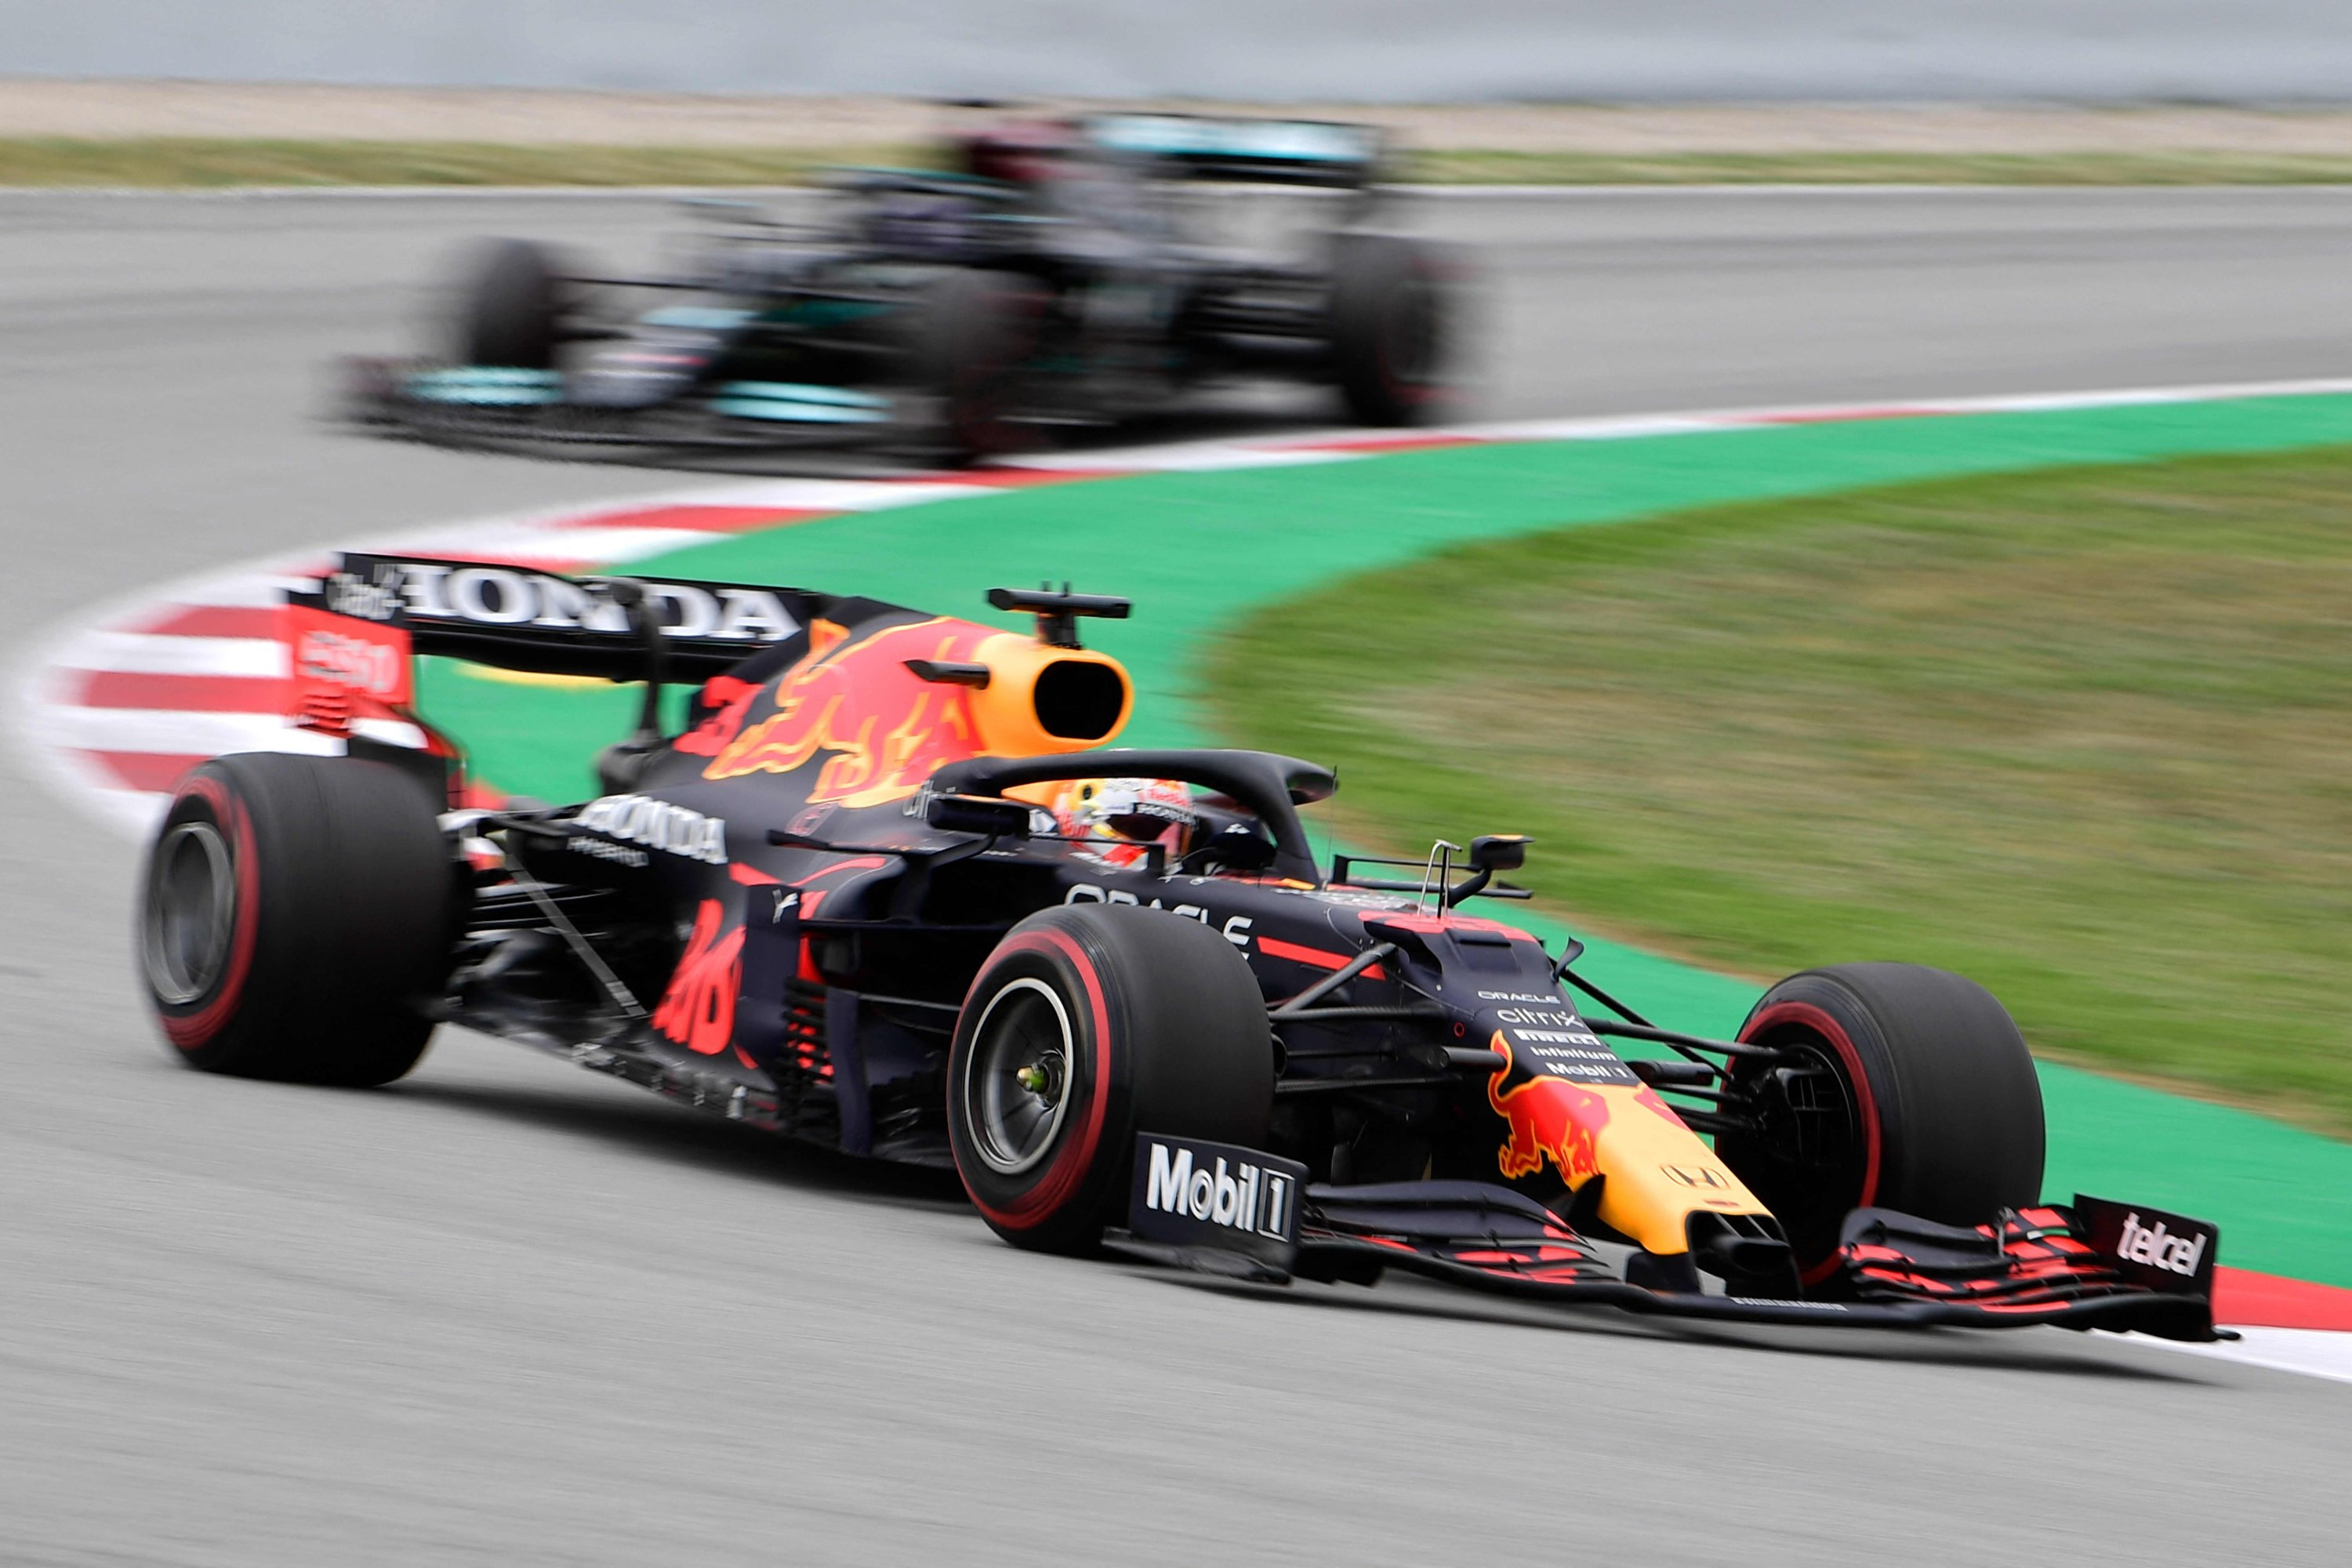 Red Bull's driver Max Verstappen drives ahead of Mercedes' Lewis Hamilton during the Spanish Formula One Grand Prix at the Barcelona Catalunya racetrack in Montmelo, on the outskirts of Barcelona, Spain, May 9, 2021. (AFP Photo)